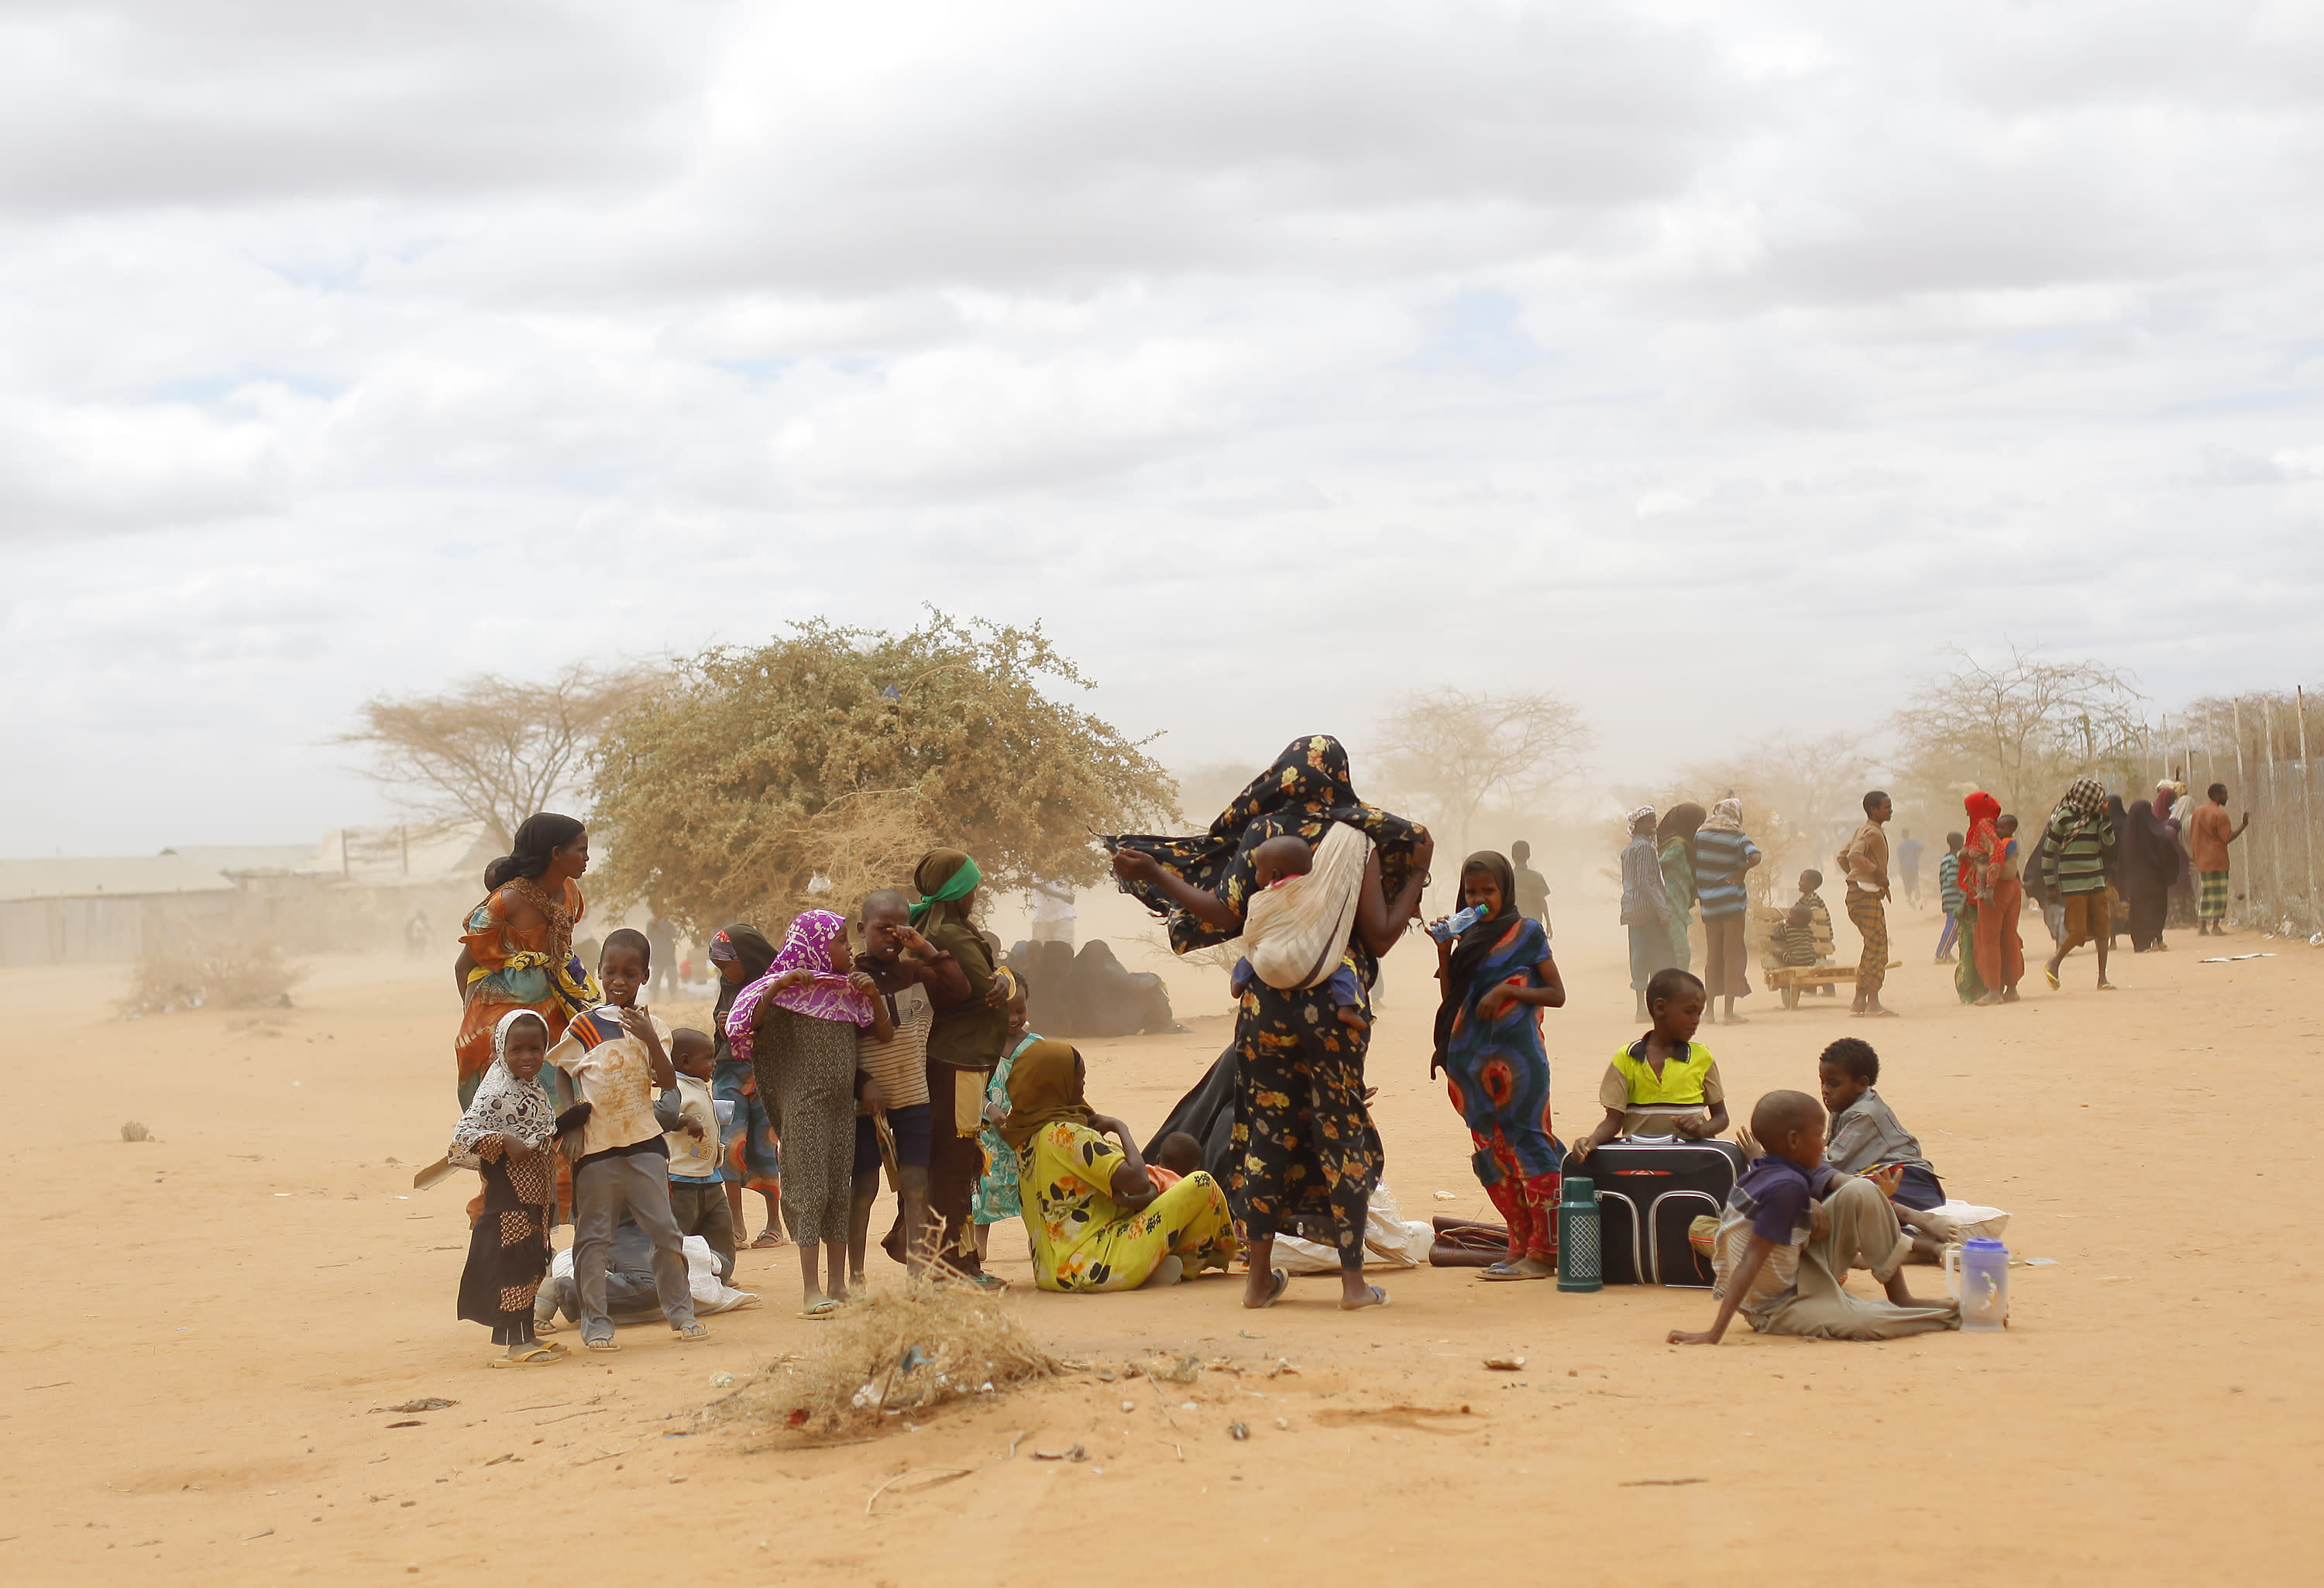 FILE - In this Aug. 5, 2011 file photo, newly arrived Somali refugees wait outside a UNHCR processing center at the Ifo refugee camp outside Dadaab, eastern Kenya, 100 kilometers (62 miles) from the Somali border. Human-induced climate change contributed to low rain levels in East Africa in 2011, making global warming one of the causes of Somalia's famine and the tens of thousands of deaths that followed, a new study has found. (AP Photo/Jerome Delay, File)